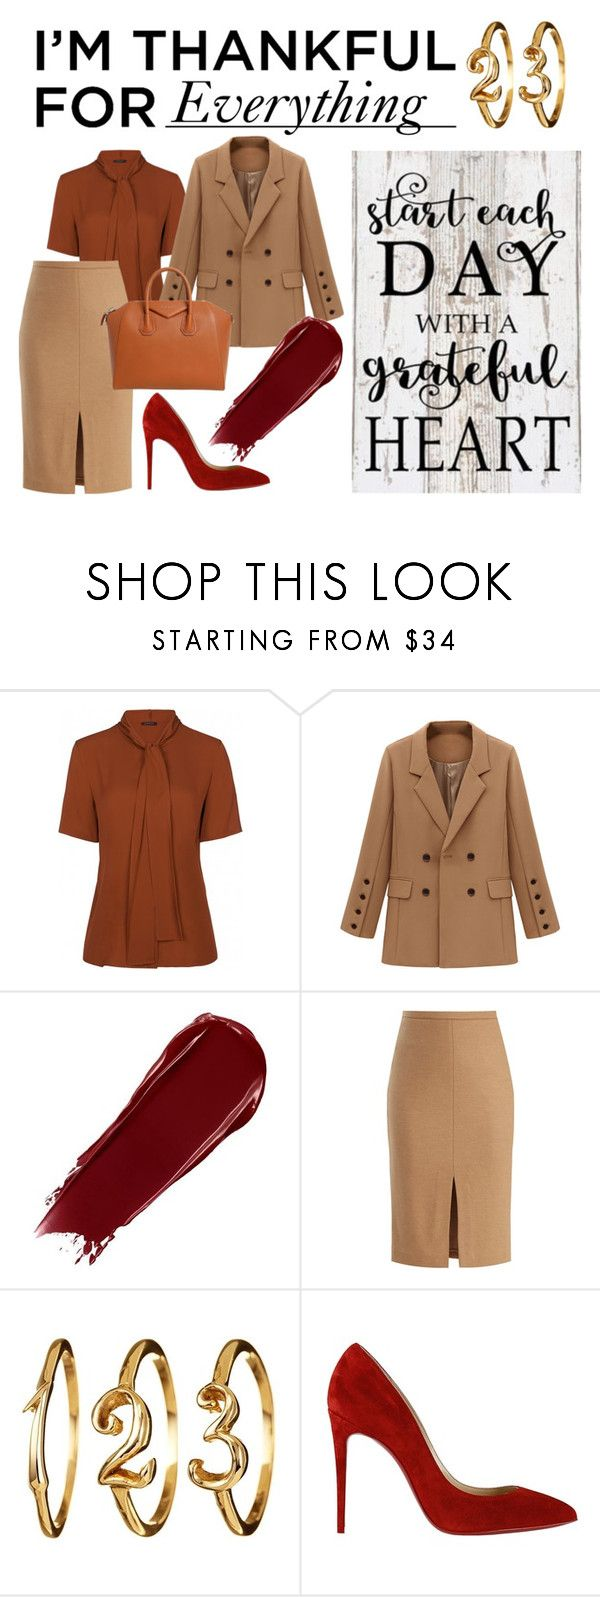 """""""I'M THANKFUL FOR EVERYTHING!"""" by annichkaloves ❤ liked on Polyvore featuring MaxMara, Christian Louboutin and Givenchy"""